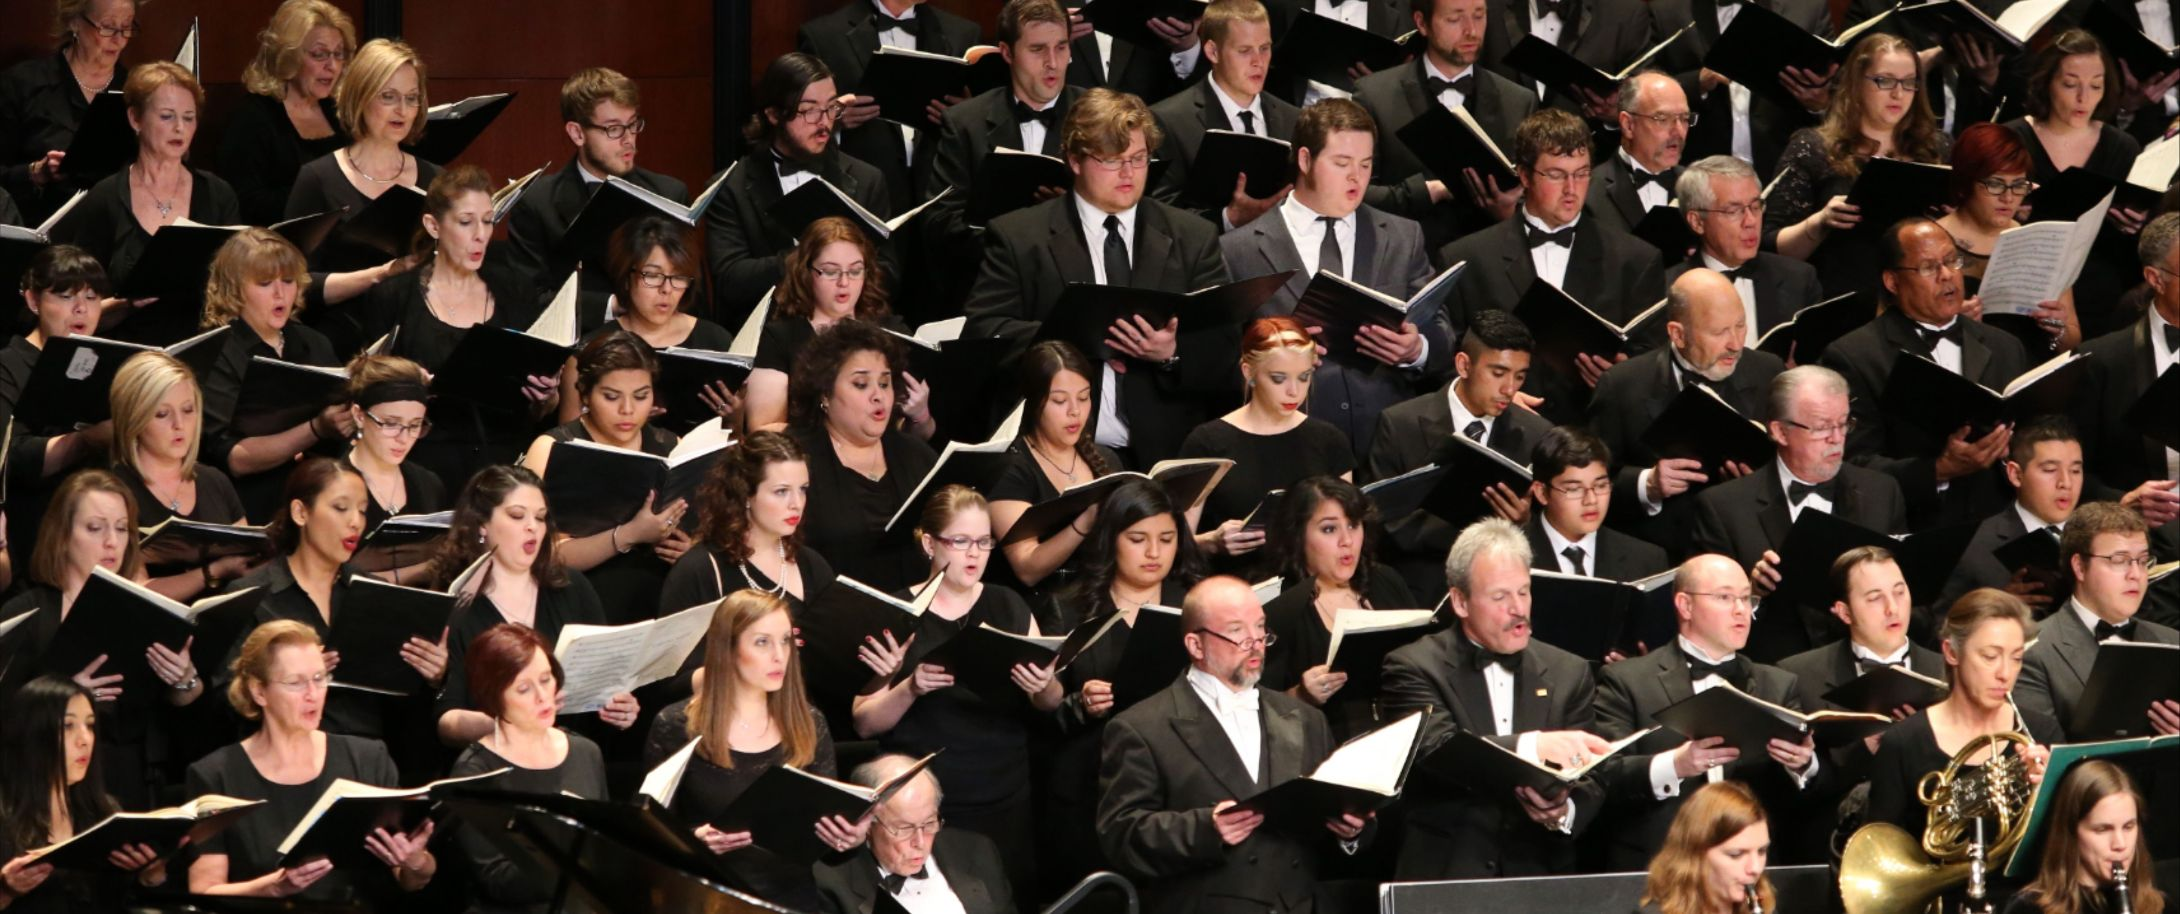 MOSC Choral Concert - A Grand Night for Singing